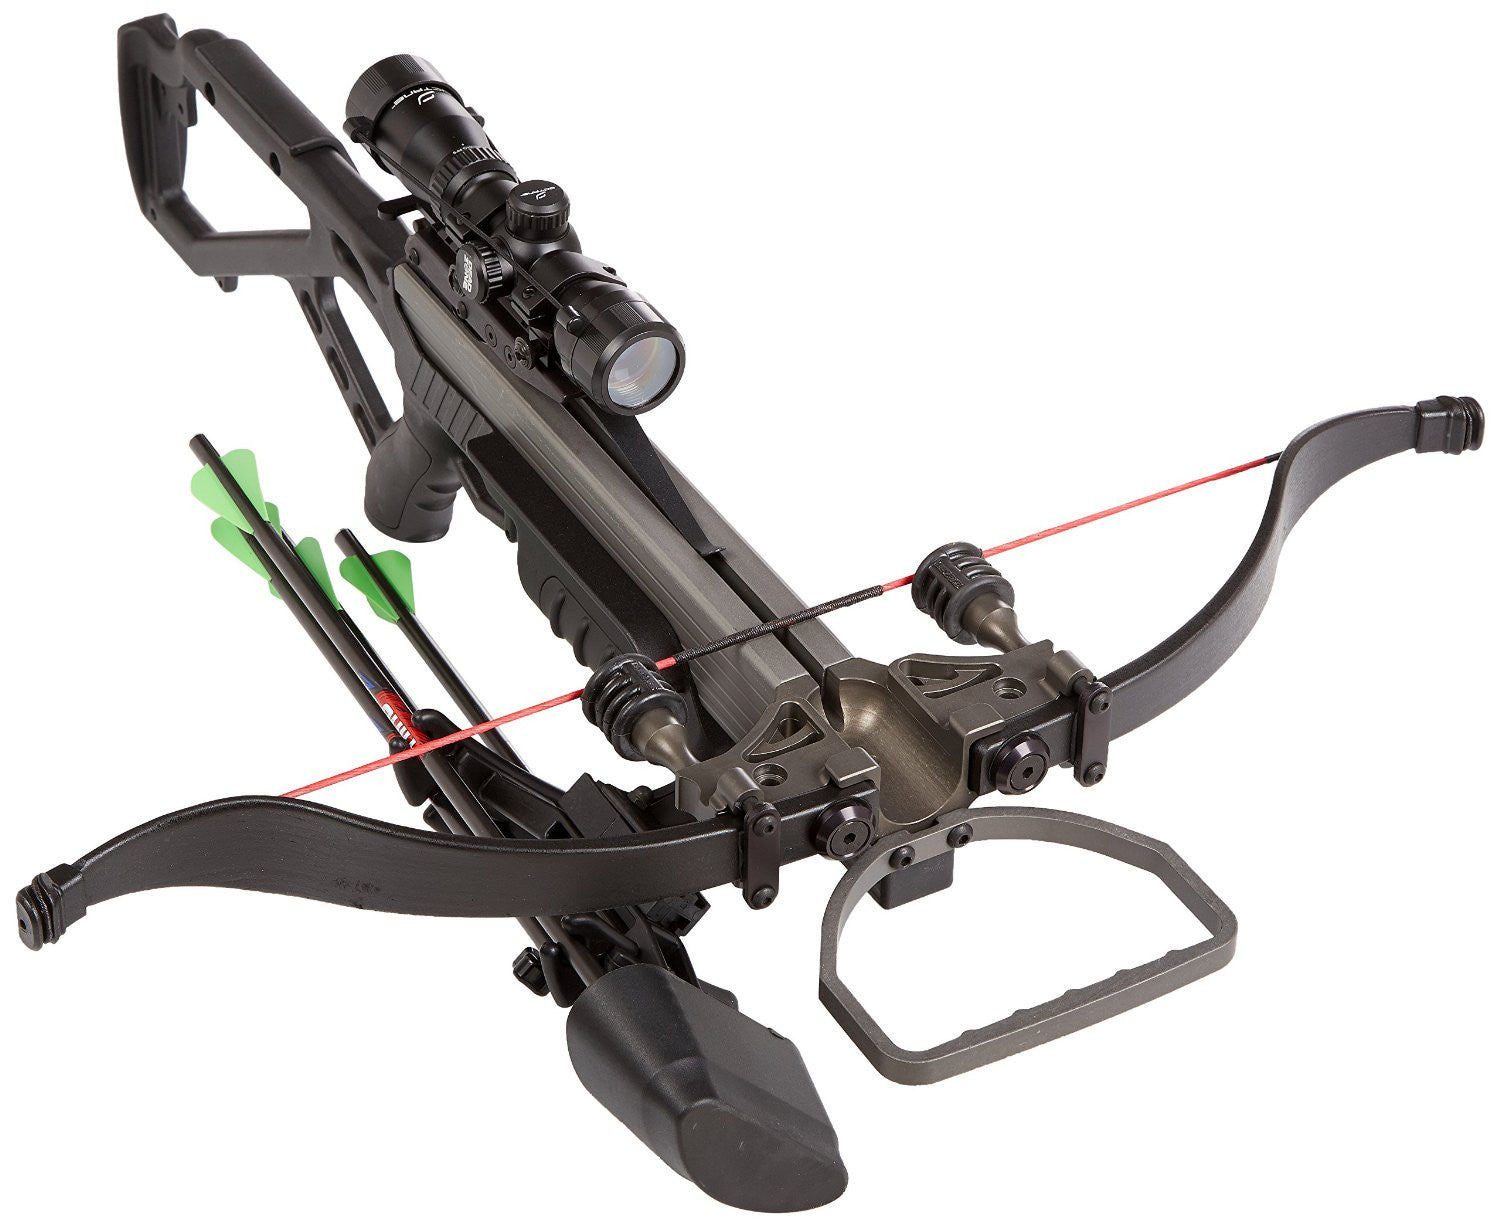 Excalibur Micro 335 Crossbow with Nightmare Package/Scope